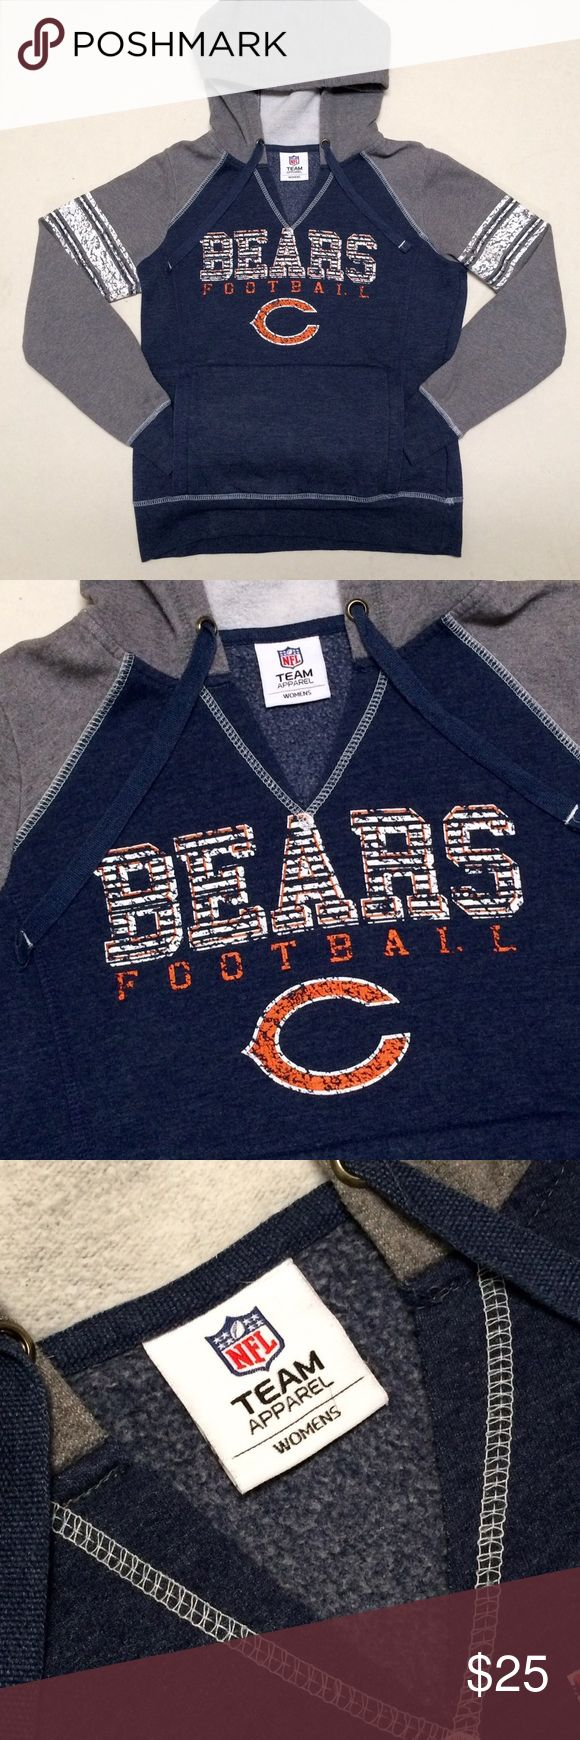 navy blue 26.88 per one welcome email chicago bears nfl womens v neck hoodie chicago bears official